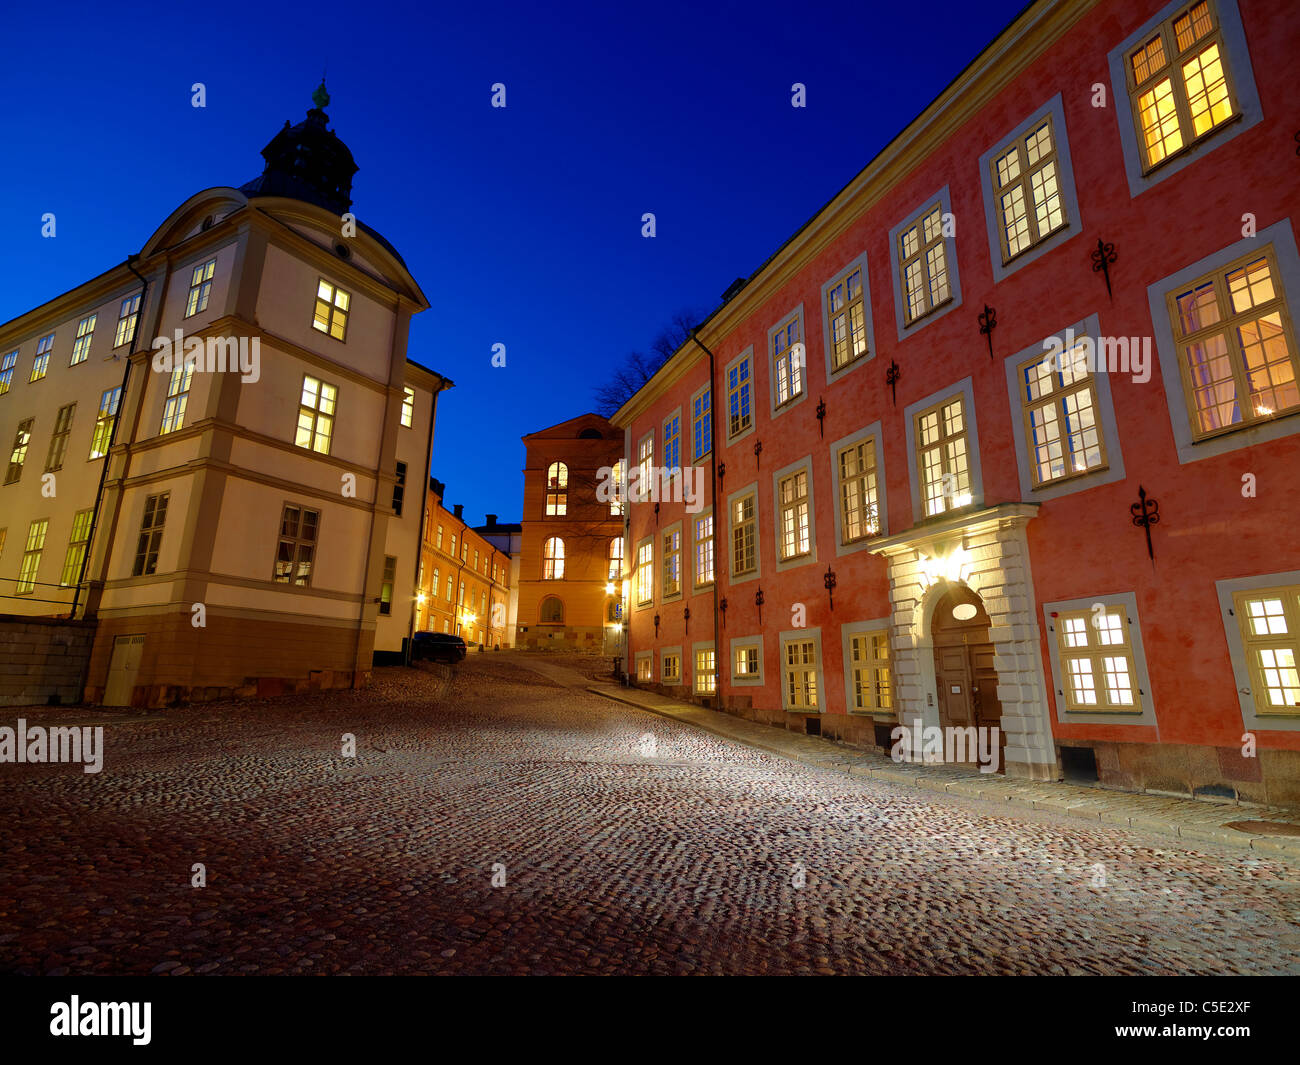 Svea Court of Appeal against blue sky with cobblestone courtyard in foreground at night in Stockholm - Stock Image